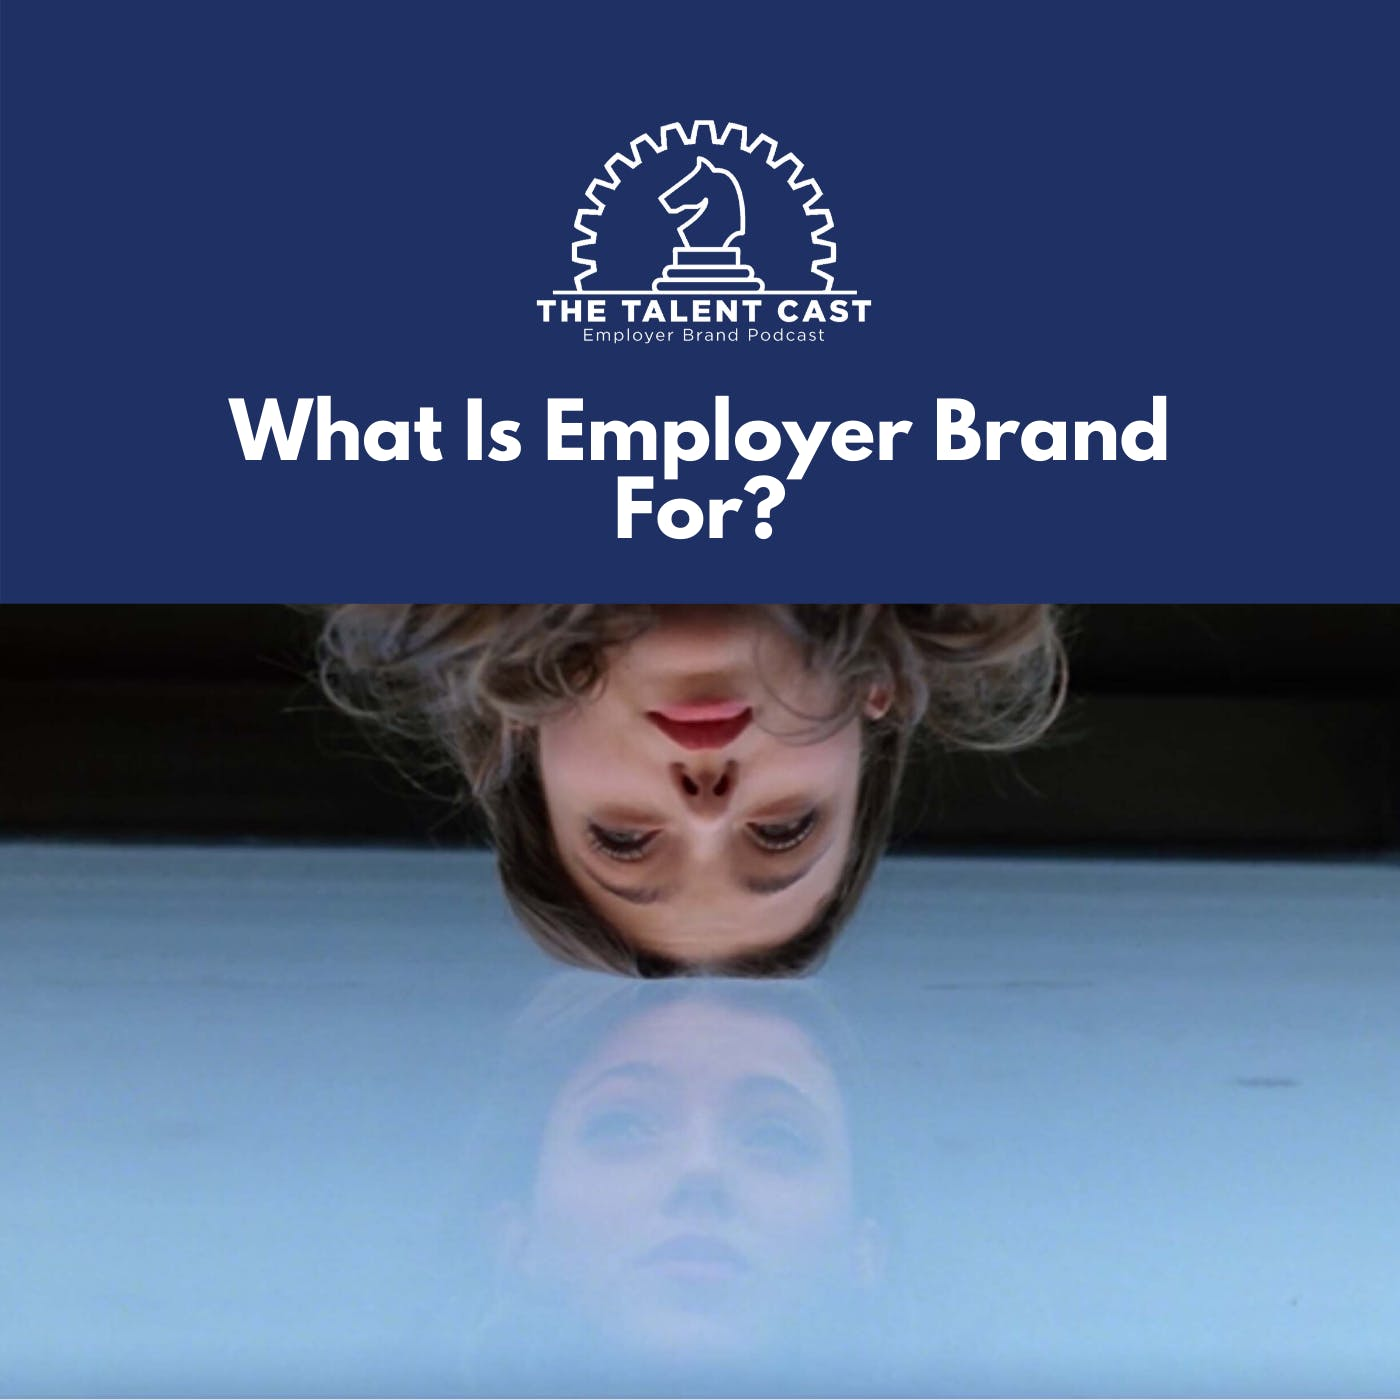 What is Employer Brand For?